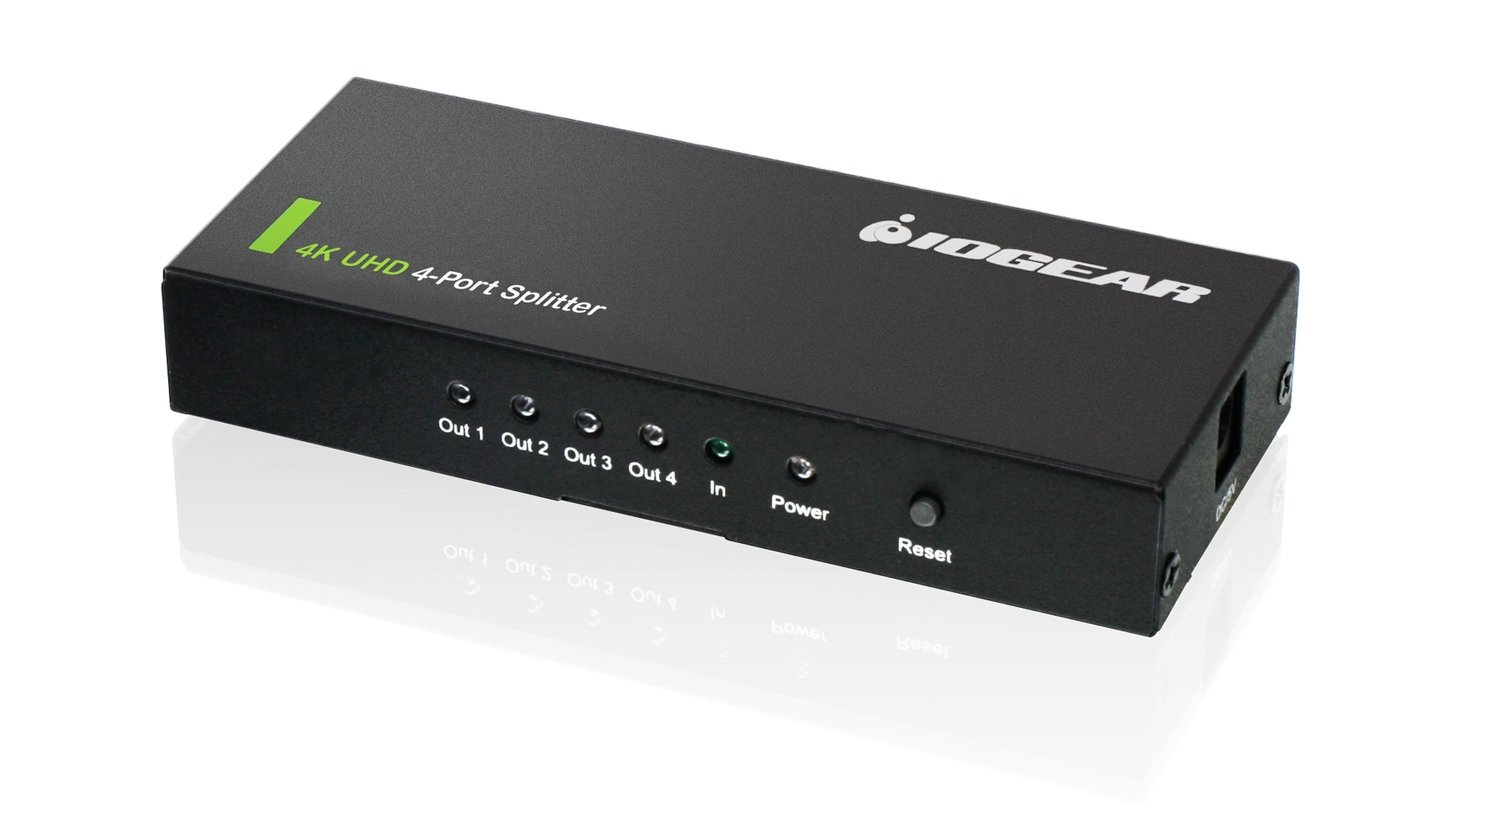 4K 4-Port HDMI Splitter